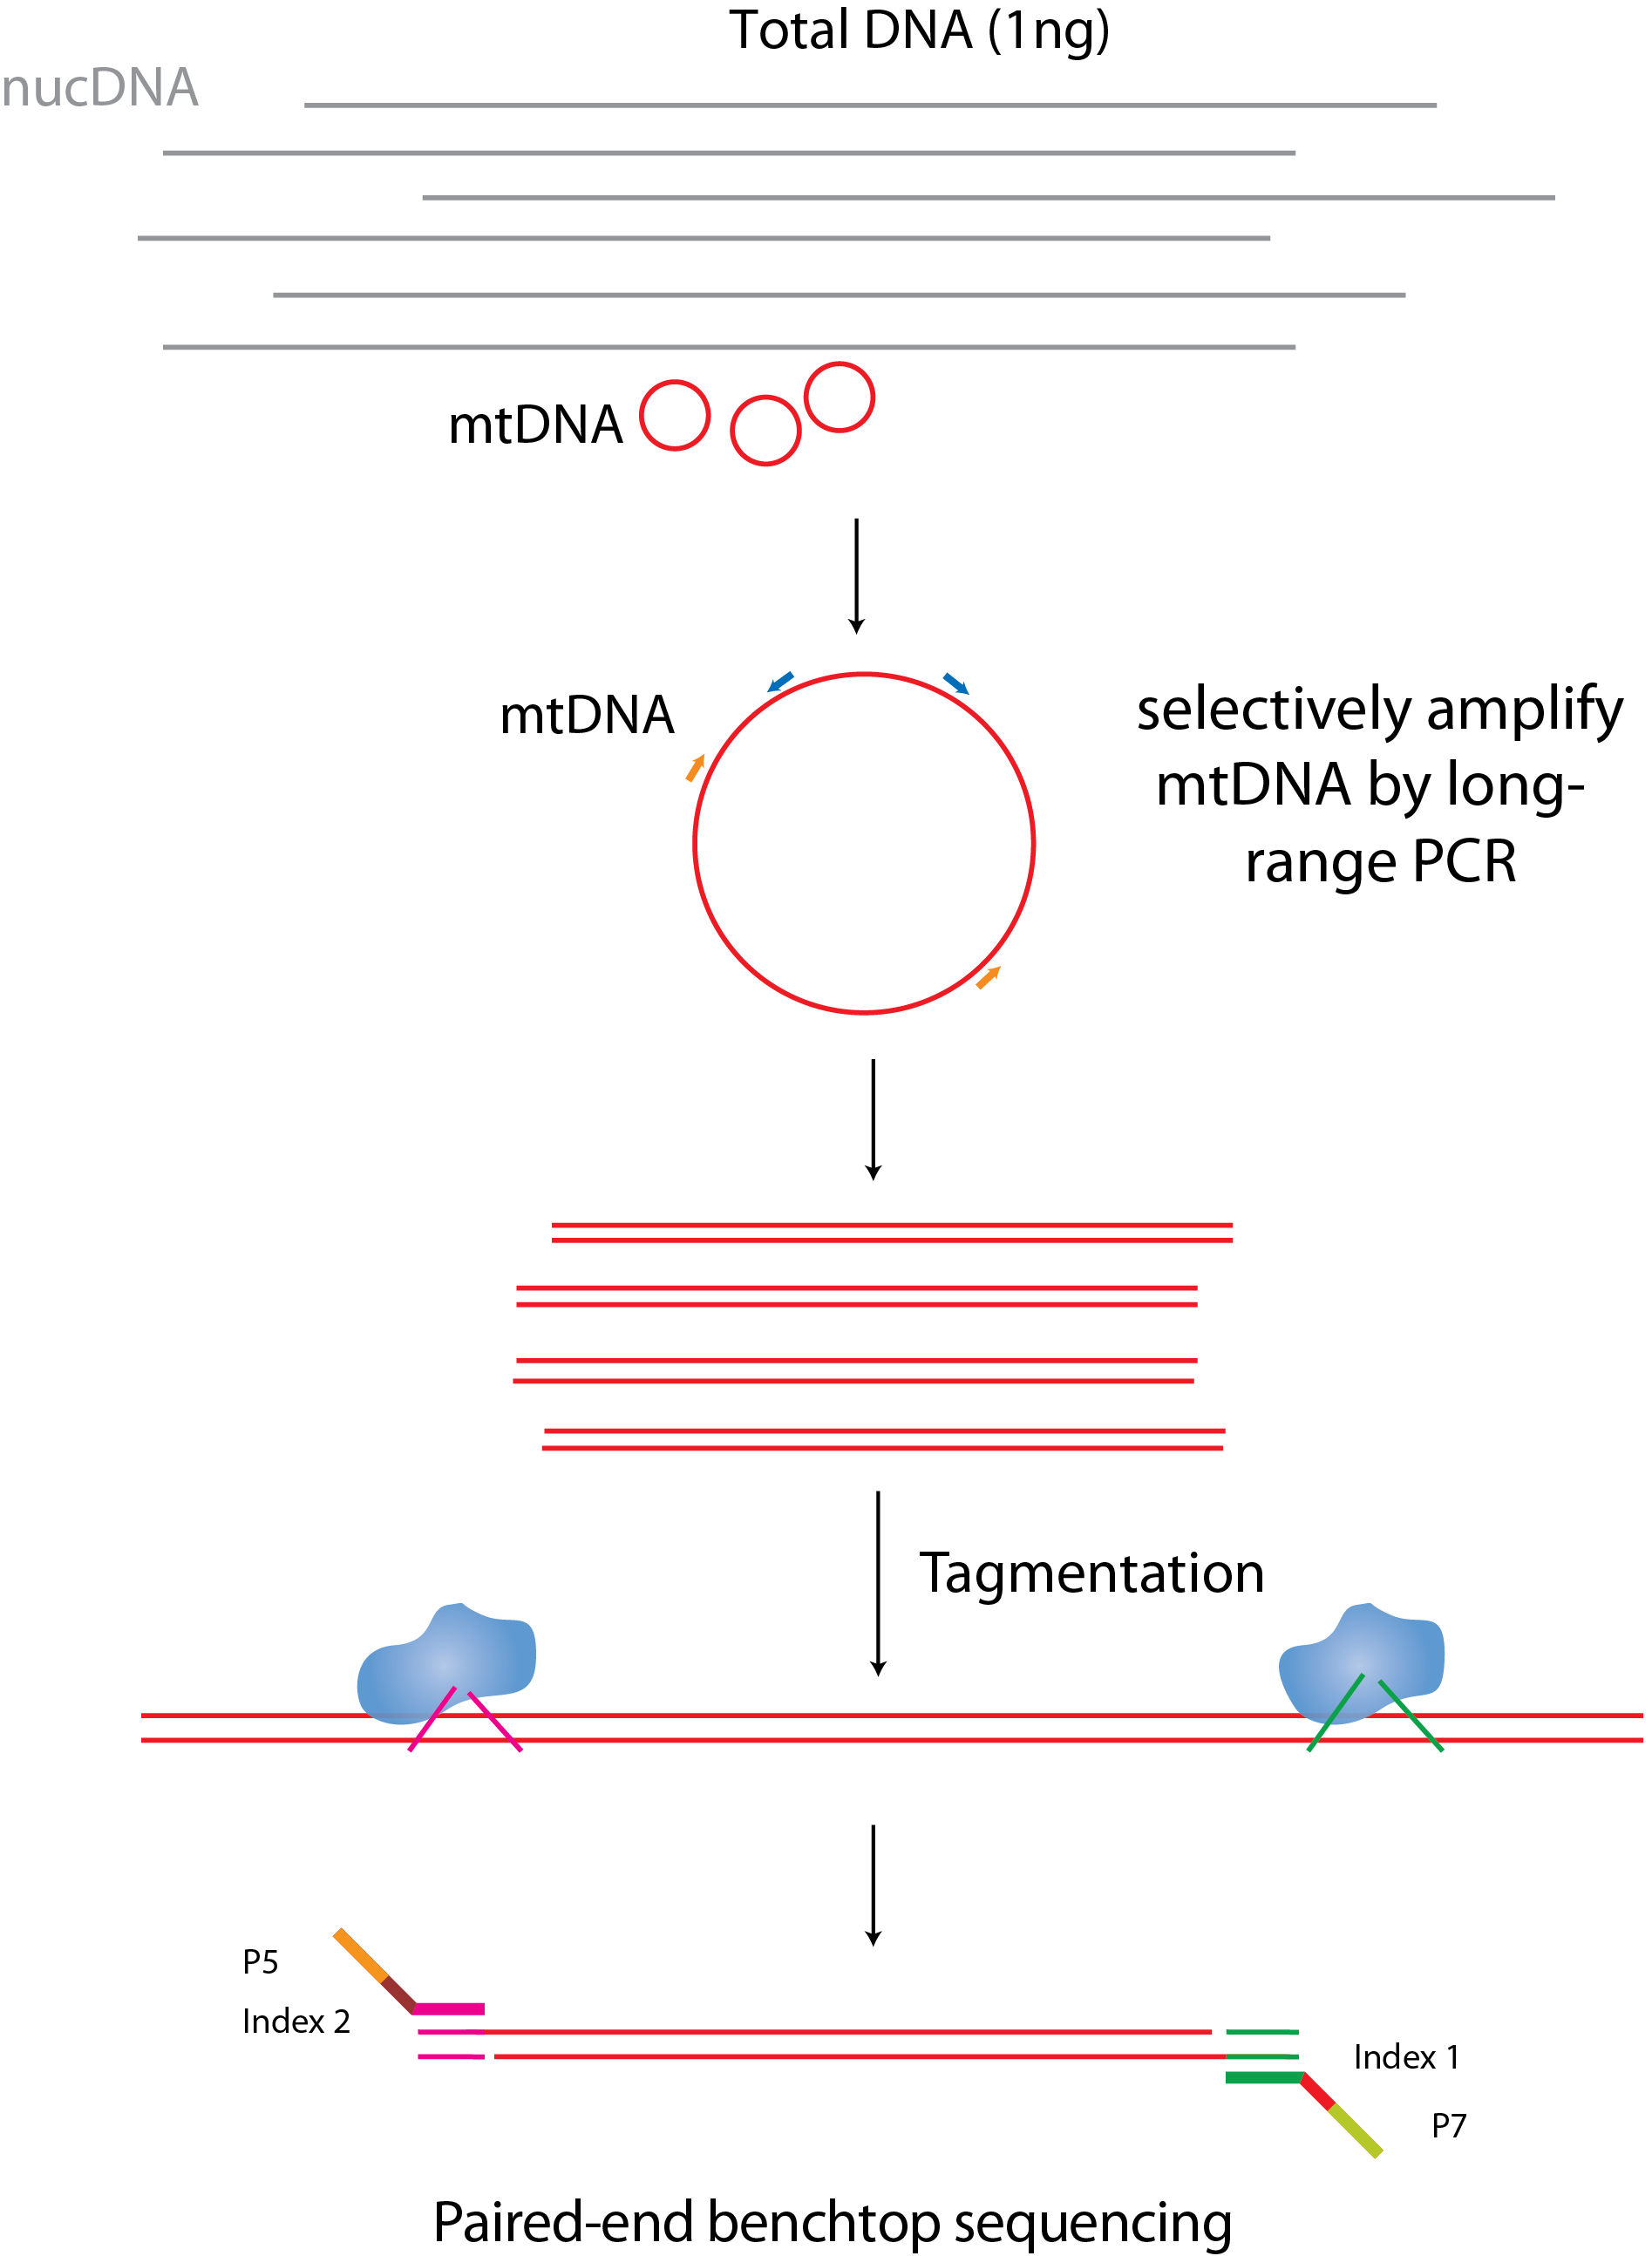 Nathan shock center cores targeted dna methylation mtdna sequencing workflow a total of 1ng genomic dna is subjected to long range pcr of two overlapping mtdna regions to selectively amplify mitochondrial ccuart Choice Image